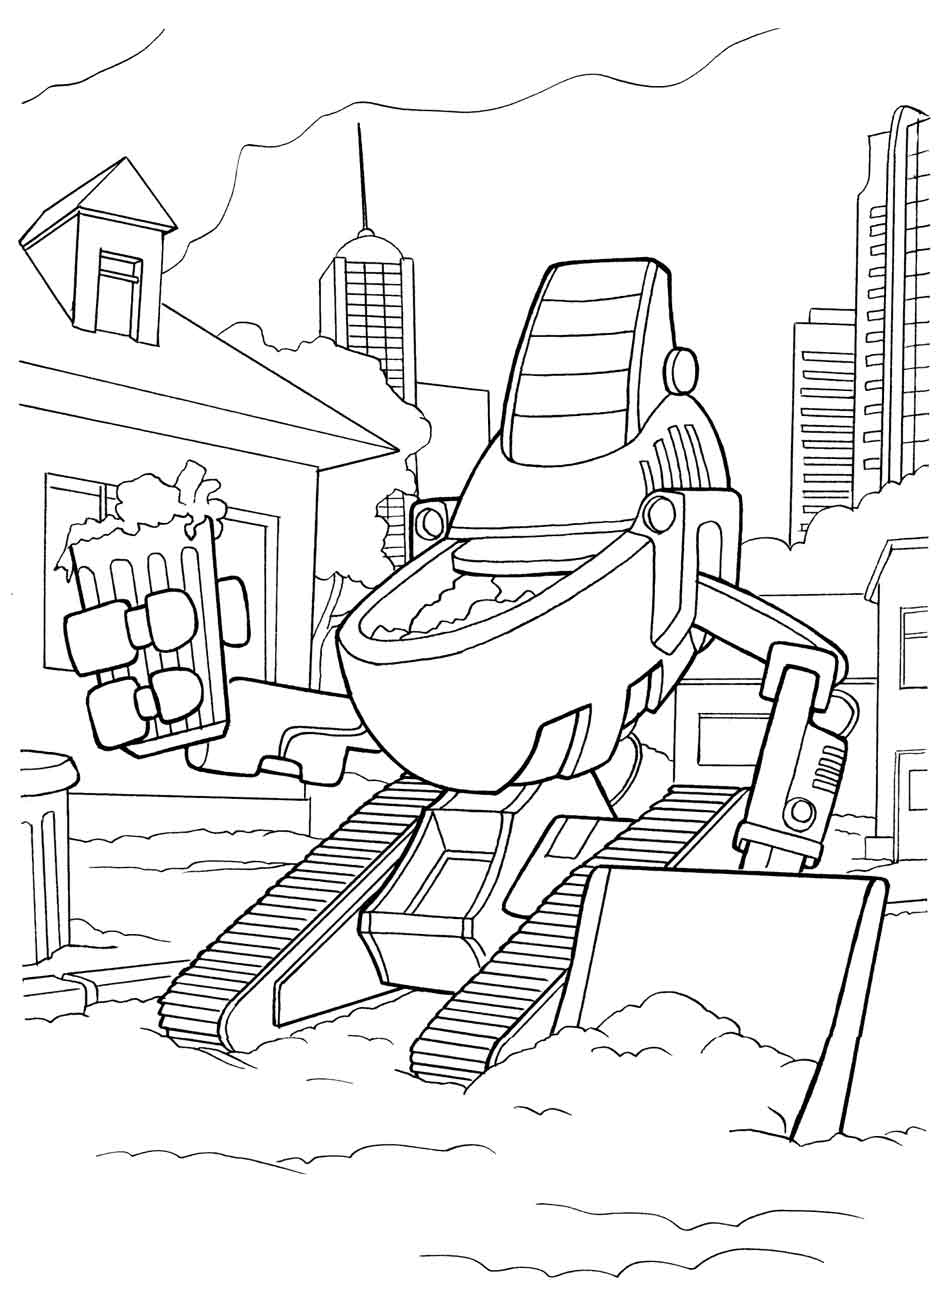 robot-coloring-pages-for-kids-14 « Preschool and Homeschool